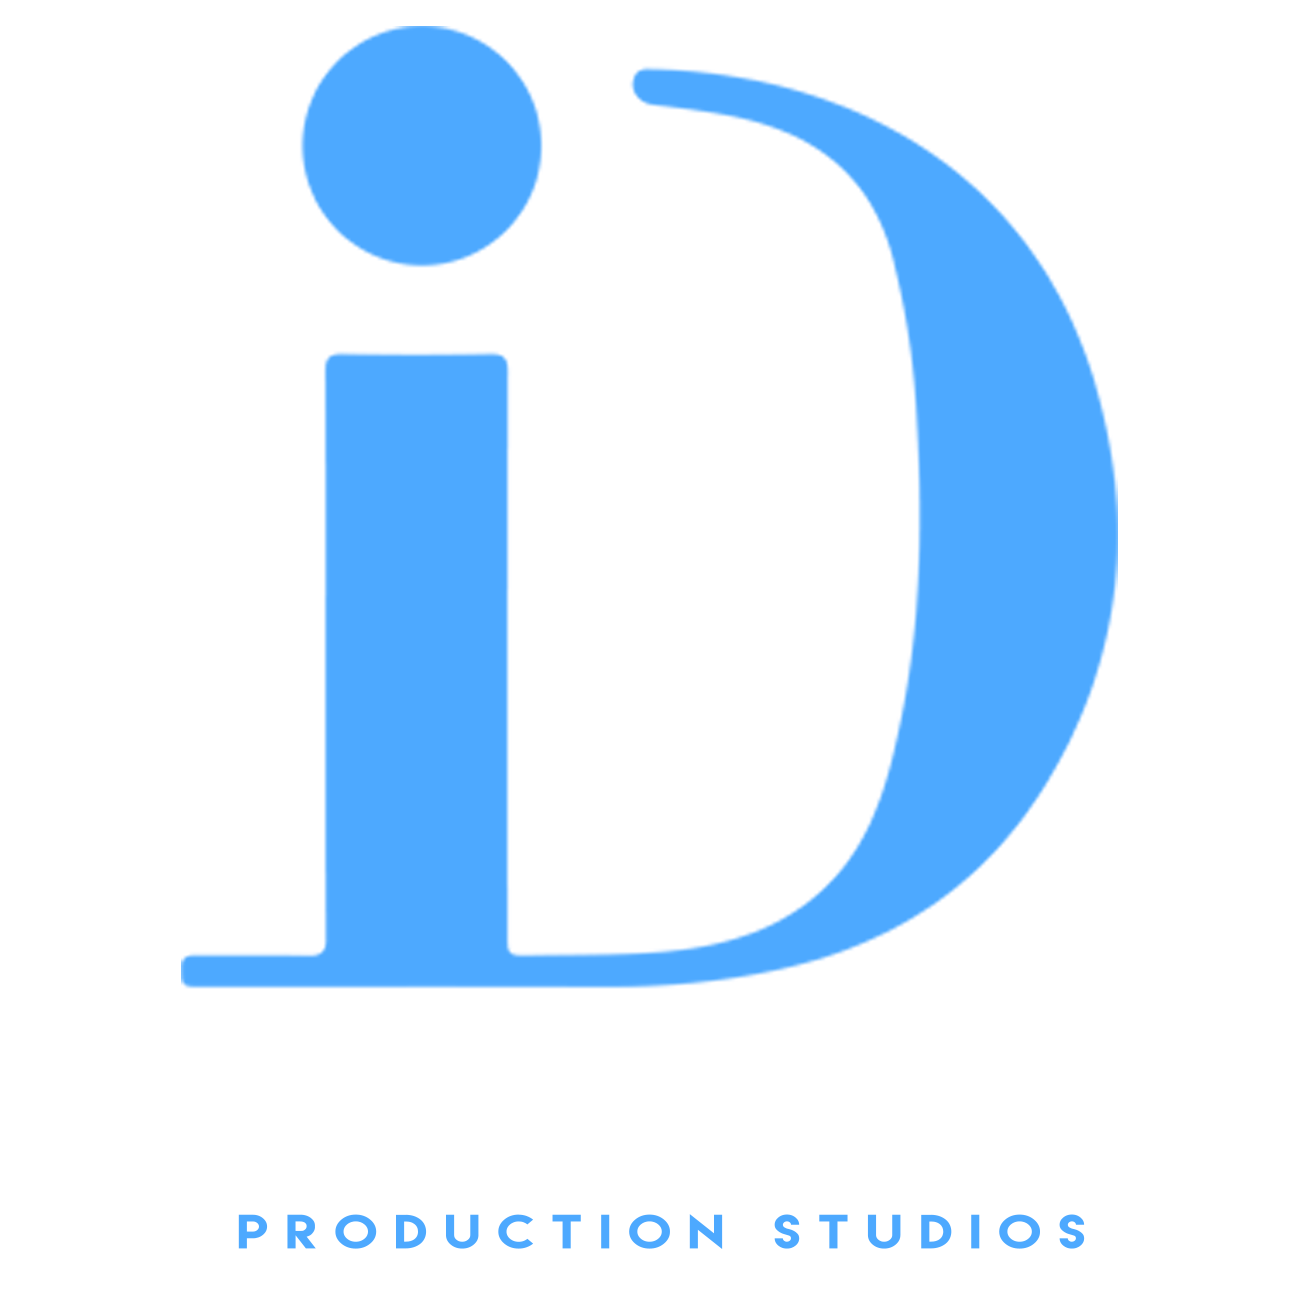 Identity Production Studios LLC